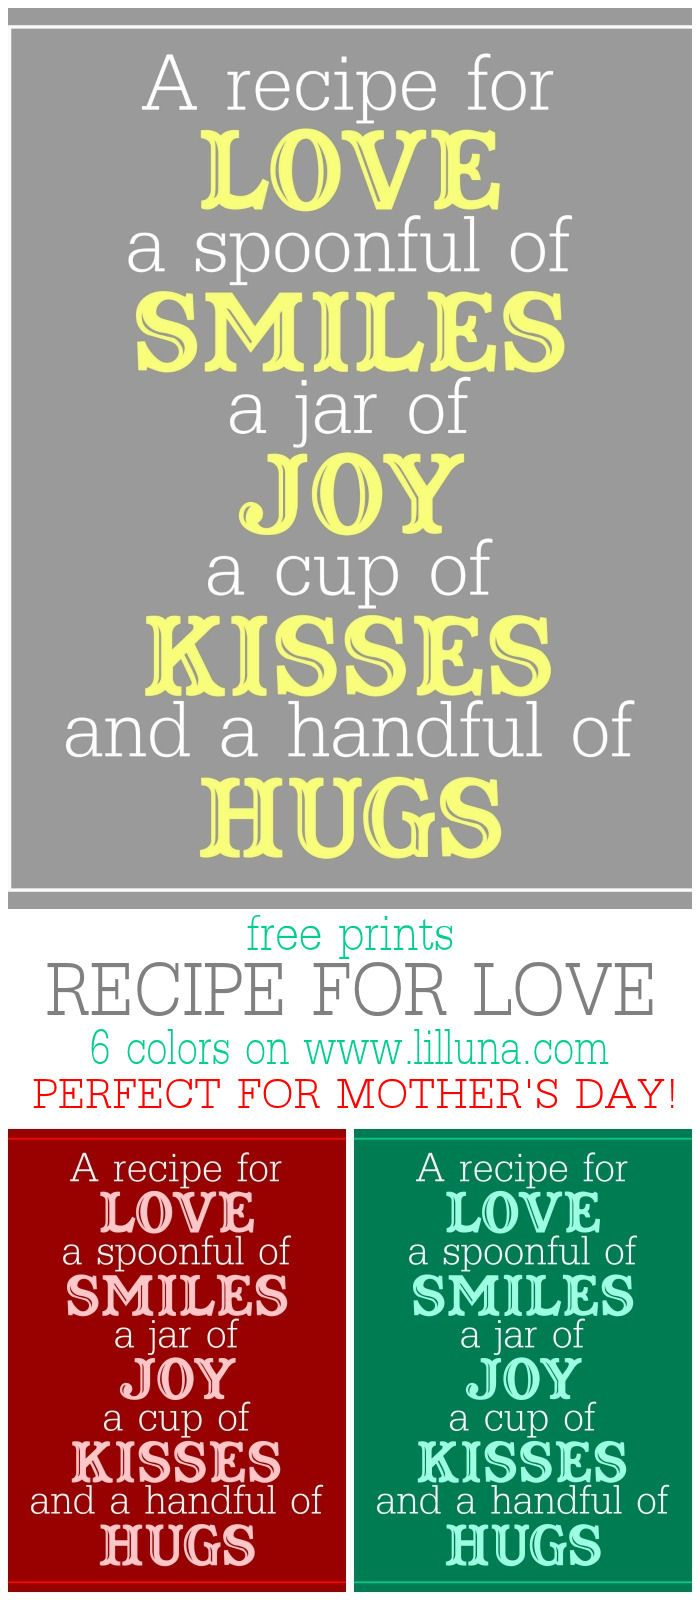 Color printing quotes - Recipe For Love Mother S Day Print 6 Free Color Prints On Lilluna Com